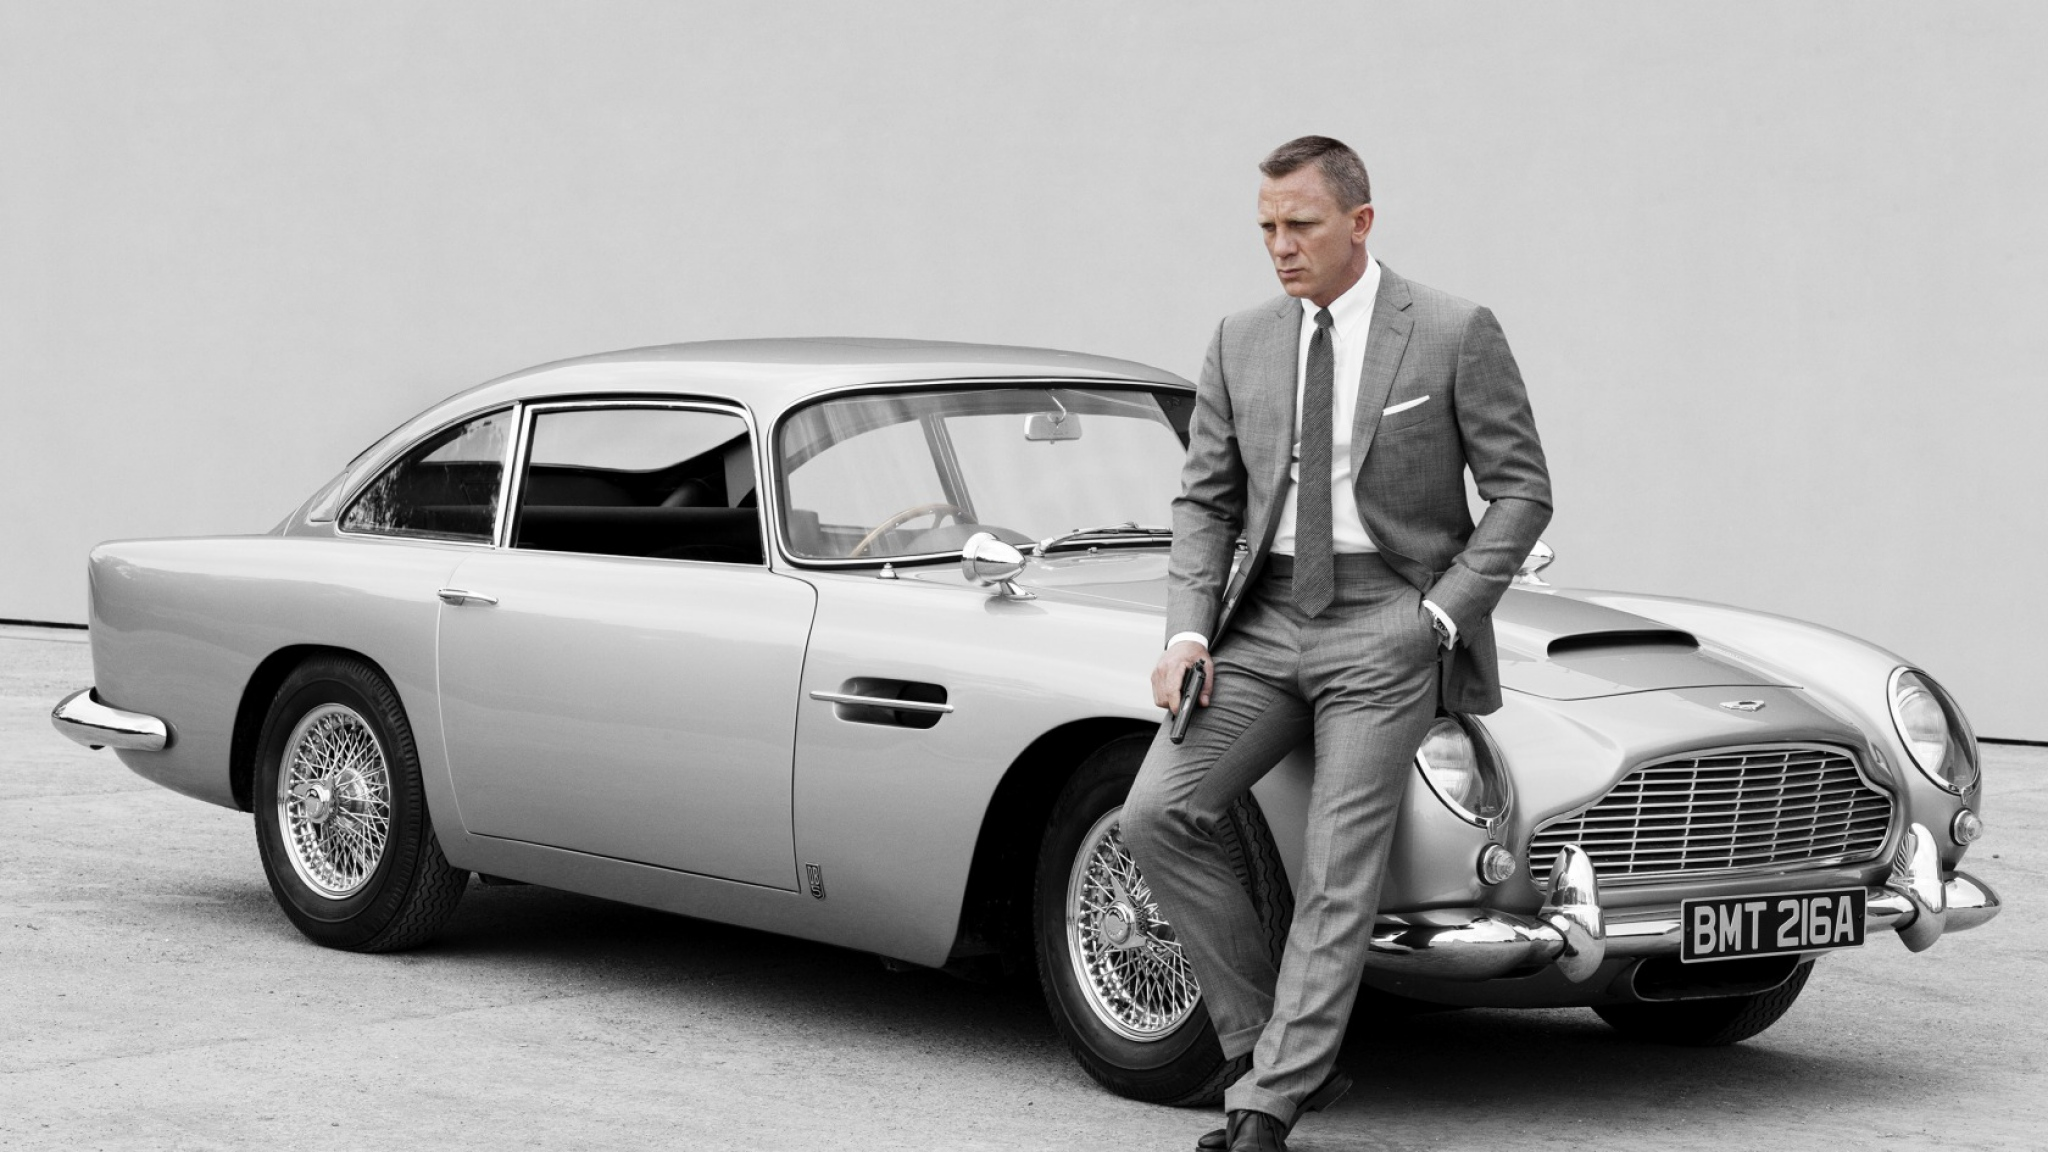 10 Things You Didn't Know About Aston Martin | Daniel Craig as 007 with the DB5